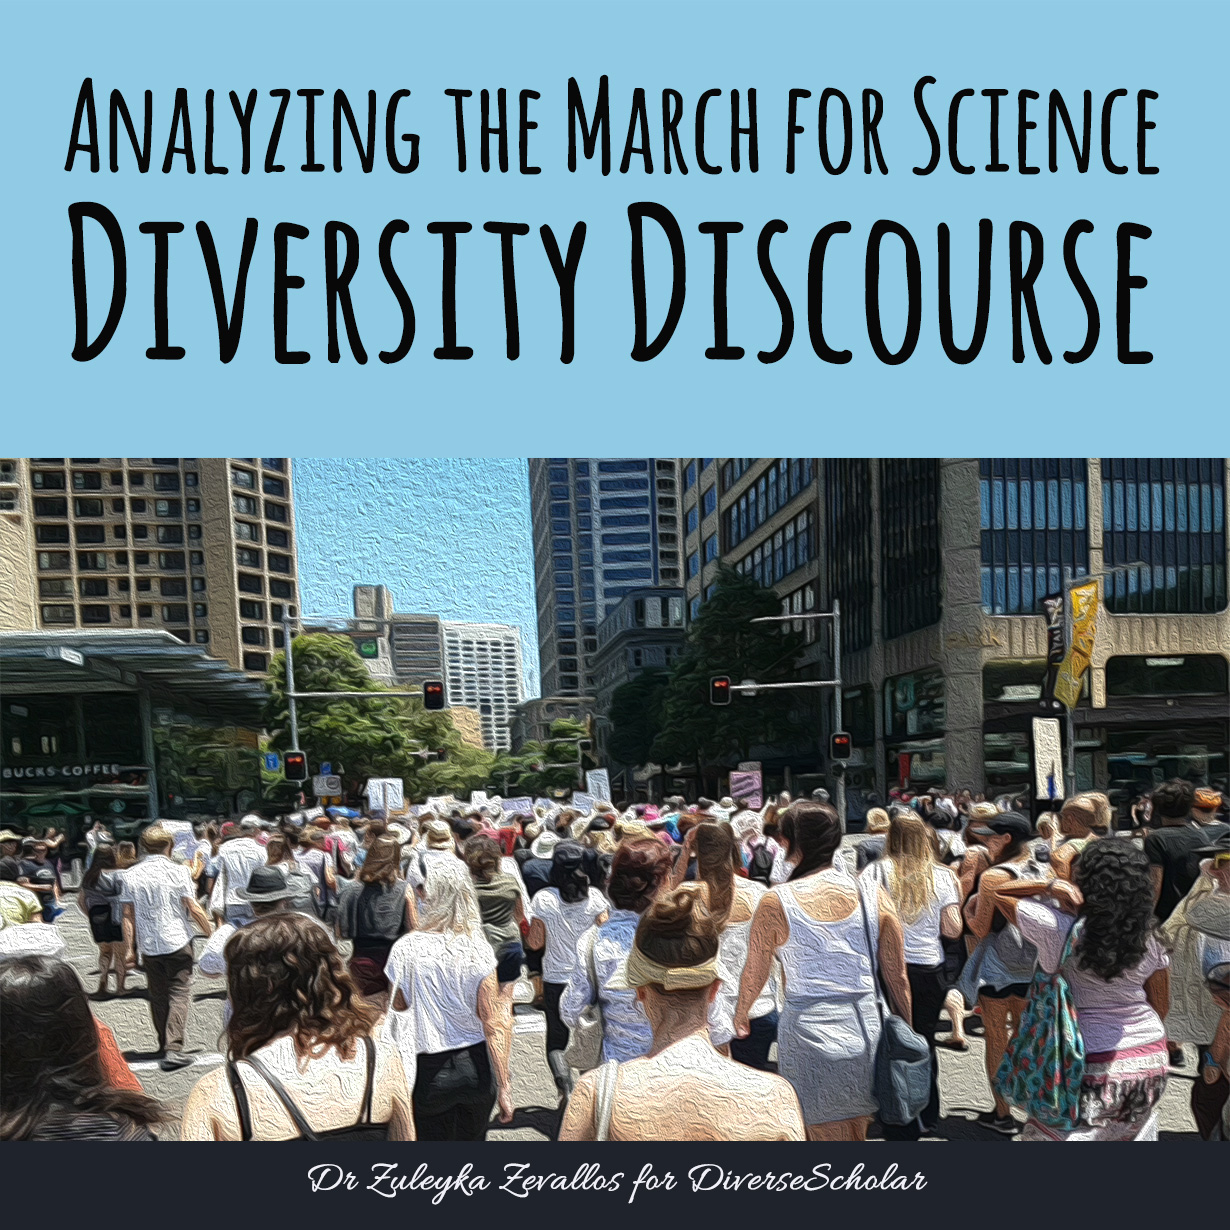 Analyzing the March for Science Diversity Discourse